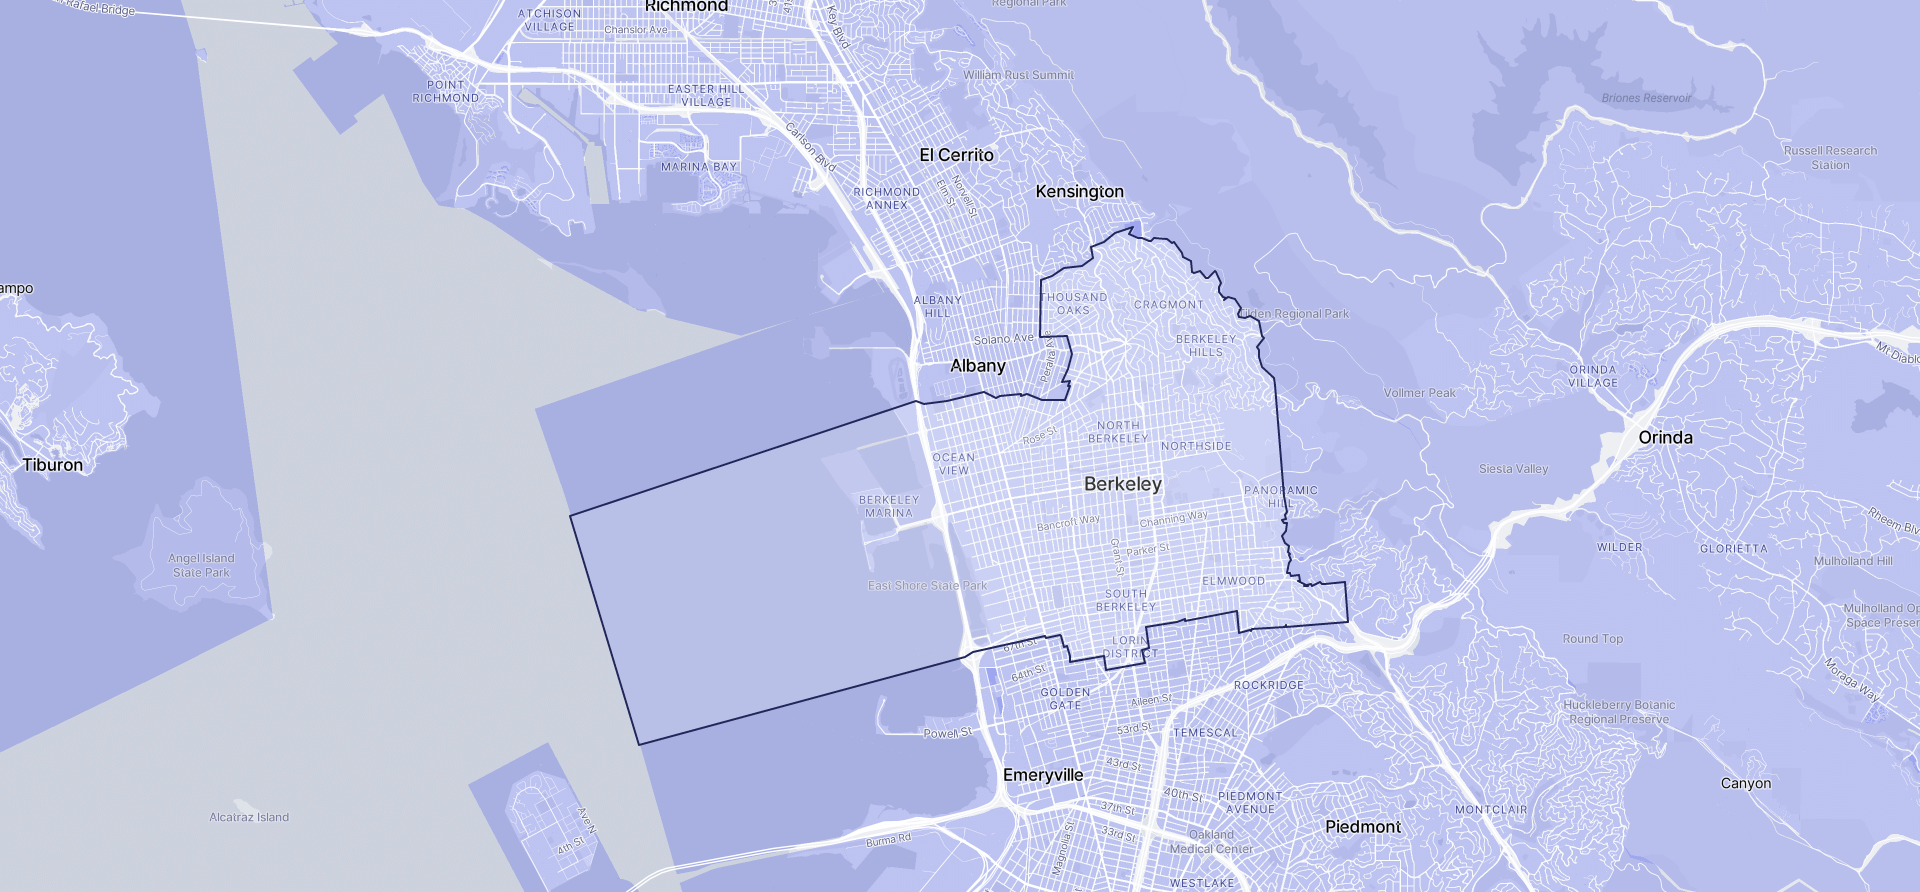 Image of Berkeley boundaries on a map.